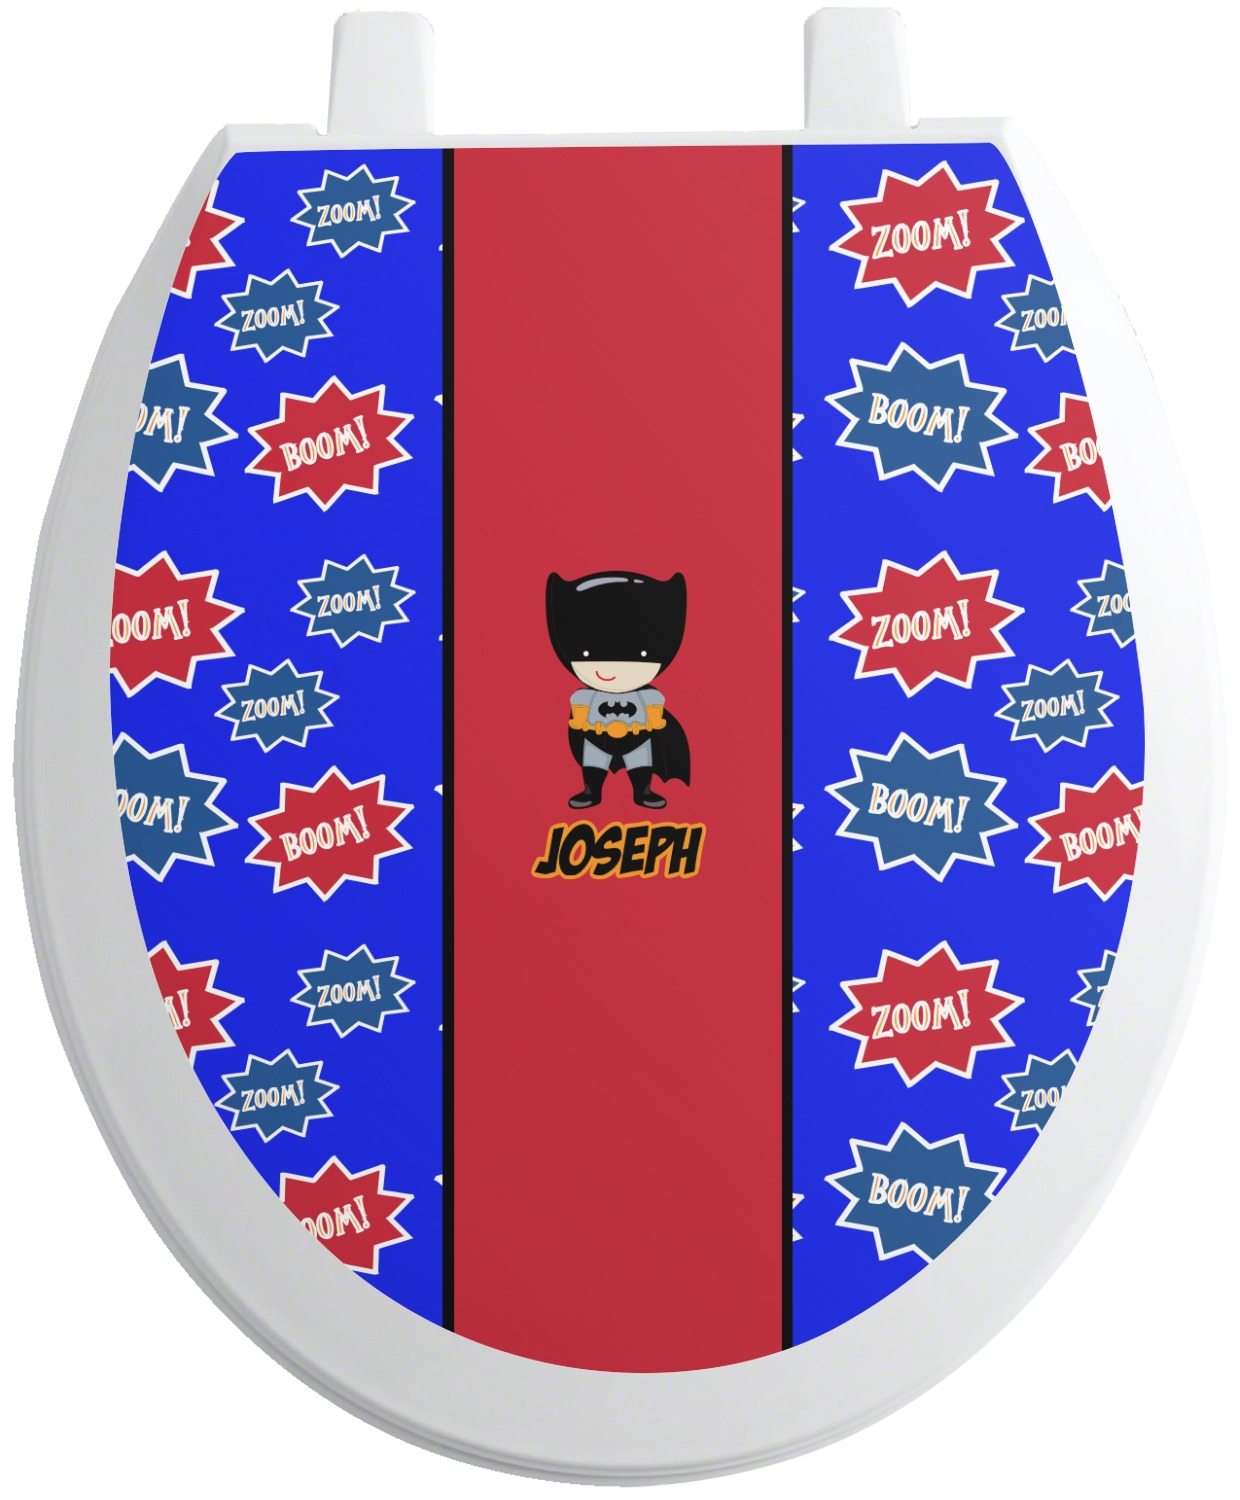 superhero toilet seat decal personalized youcustomizeit. Black Bedroom Furniture Sets. Home Design Ideas